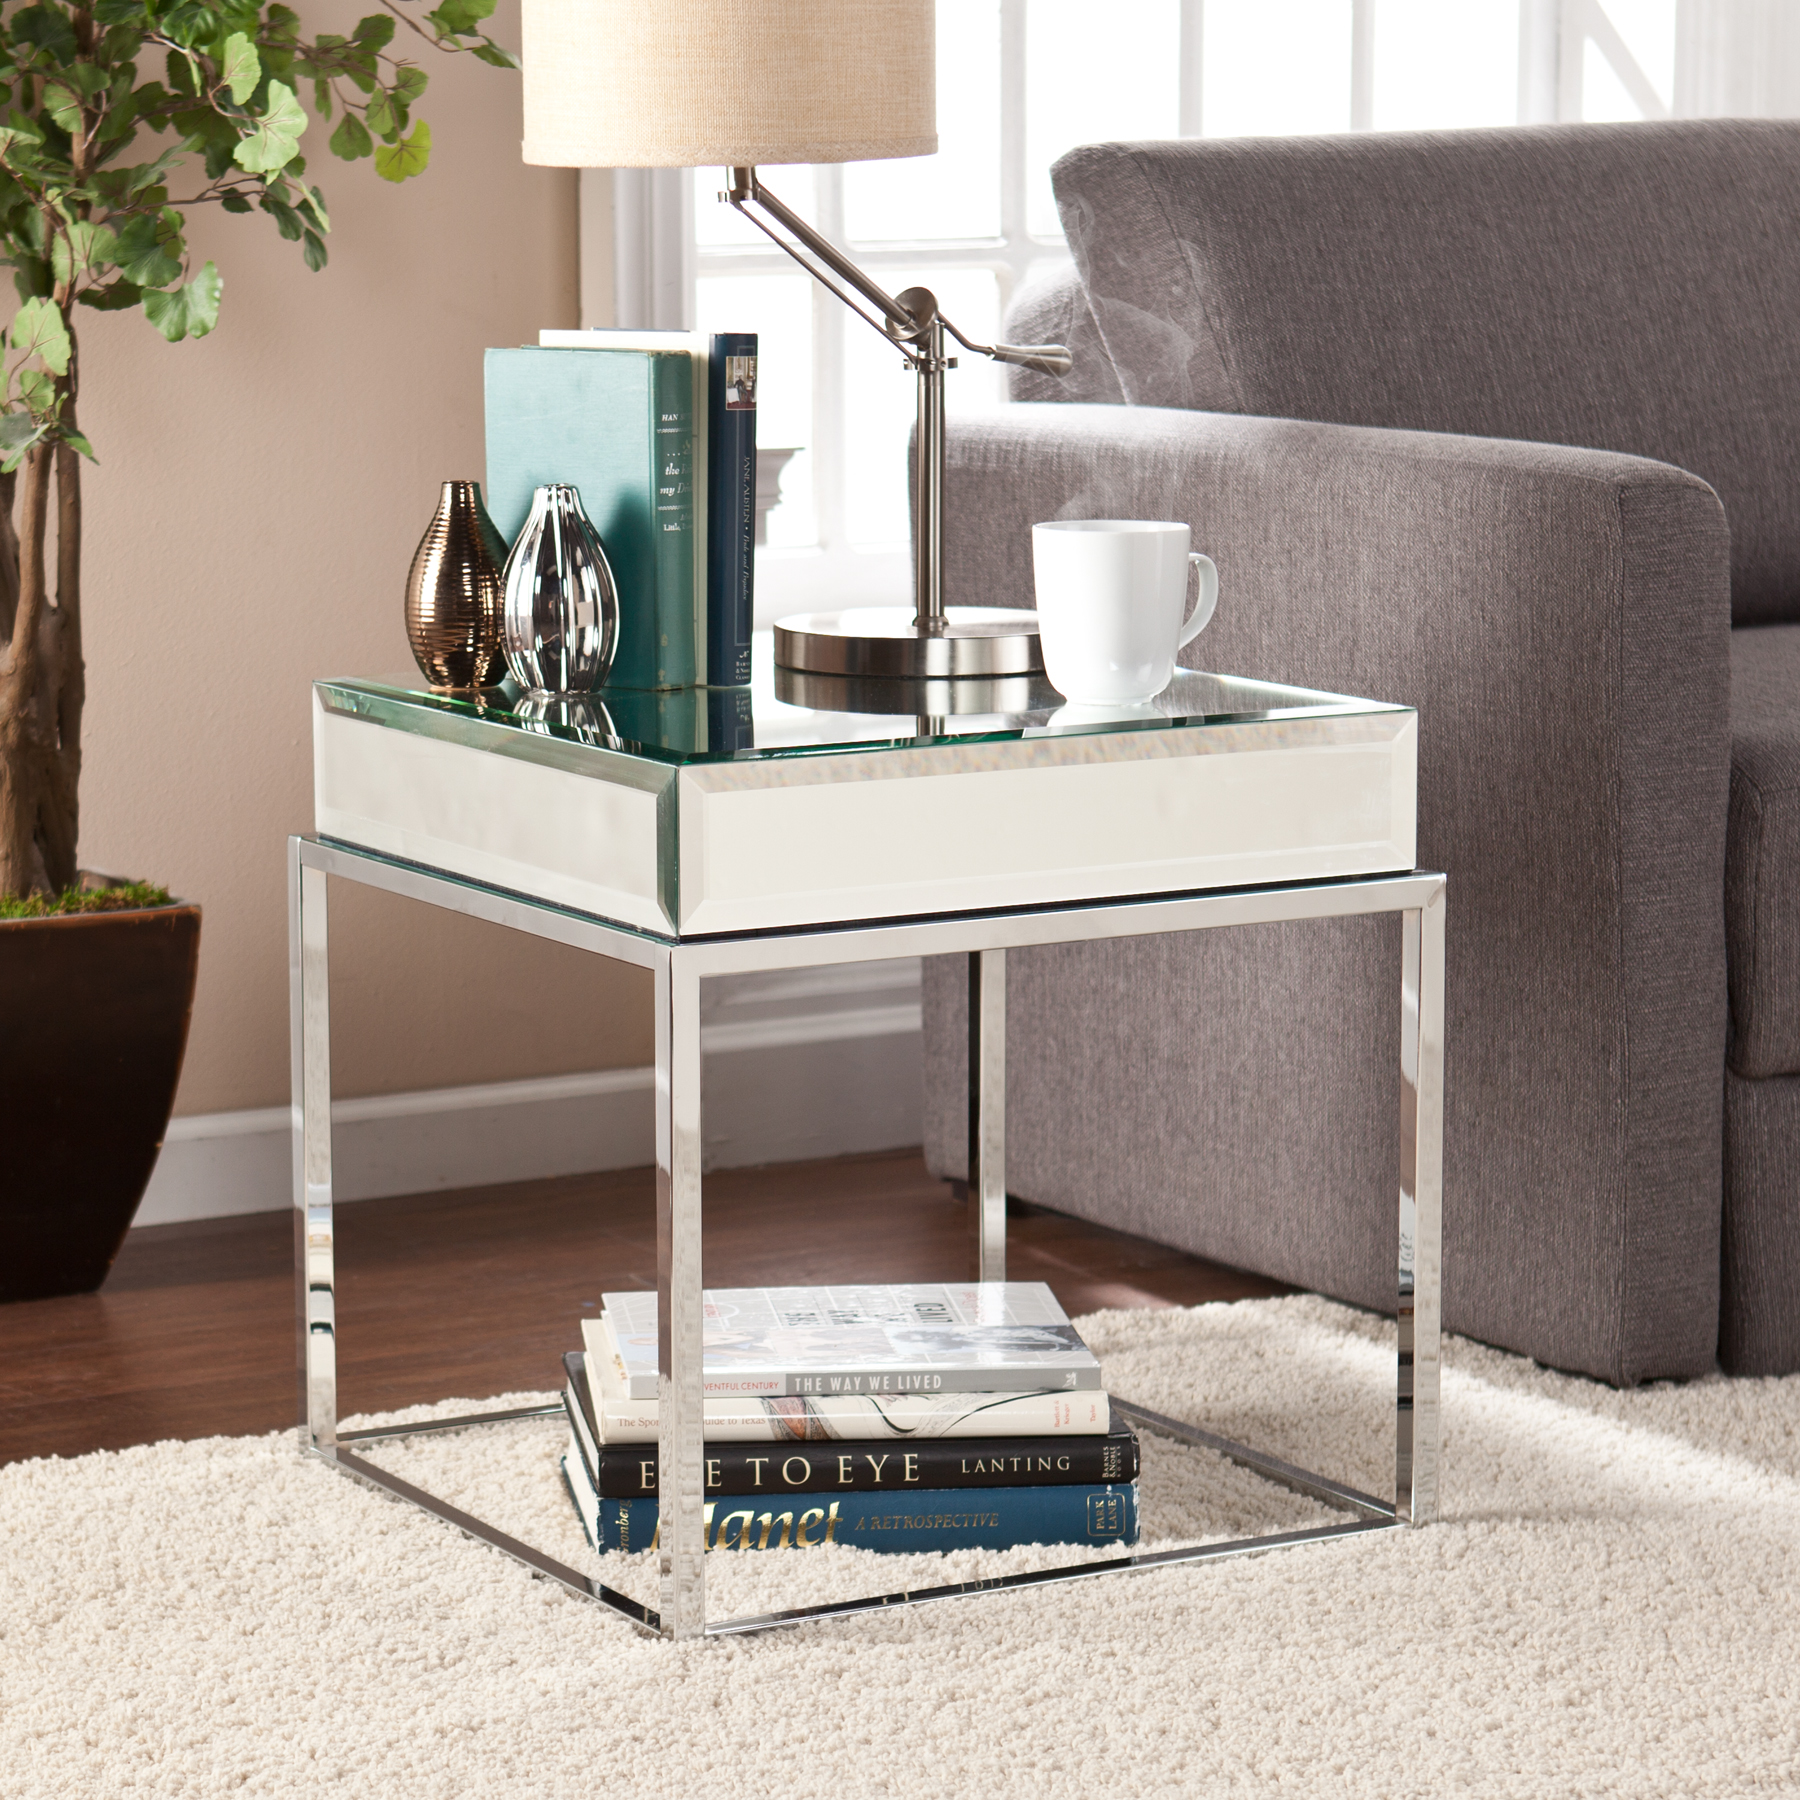 Southern Enterprises Stassi End Table, Glam/Contemporary style, Mirrored